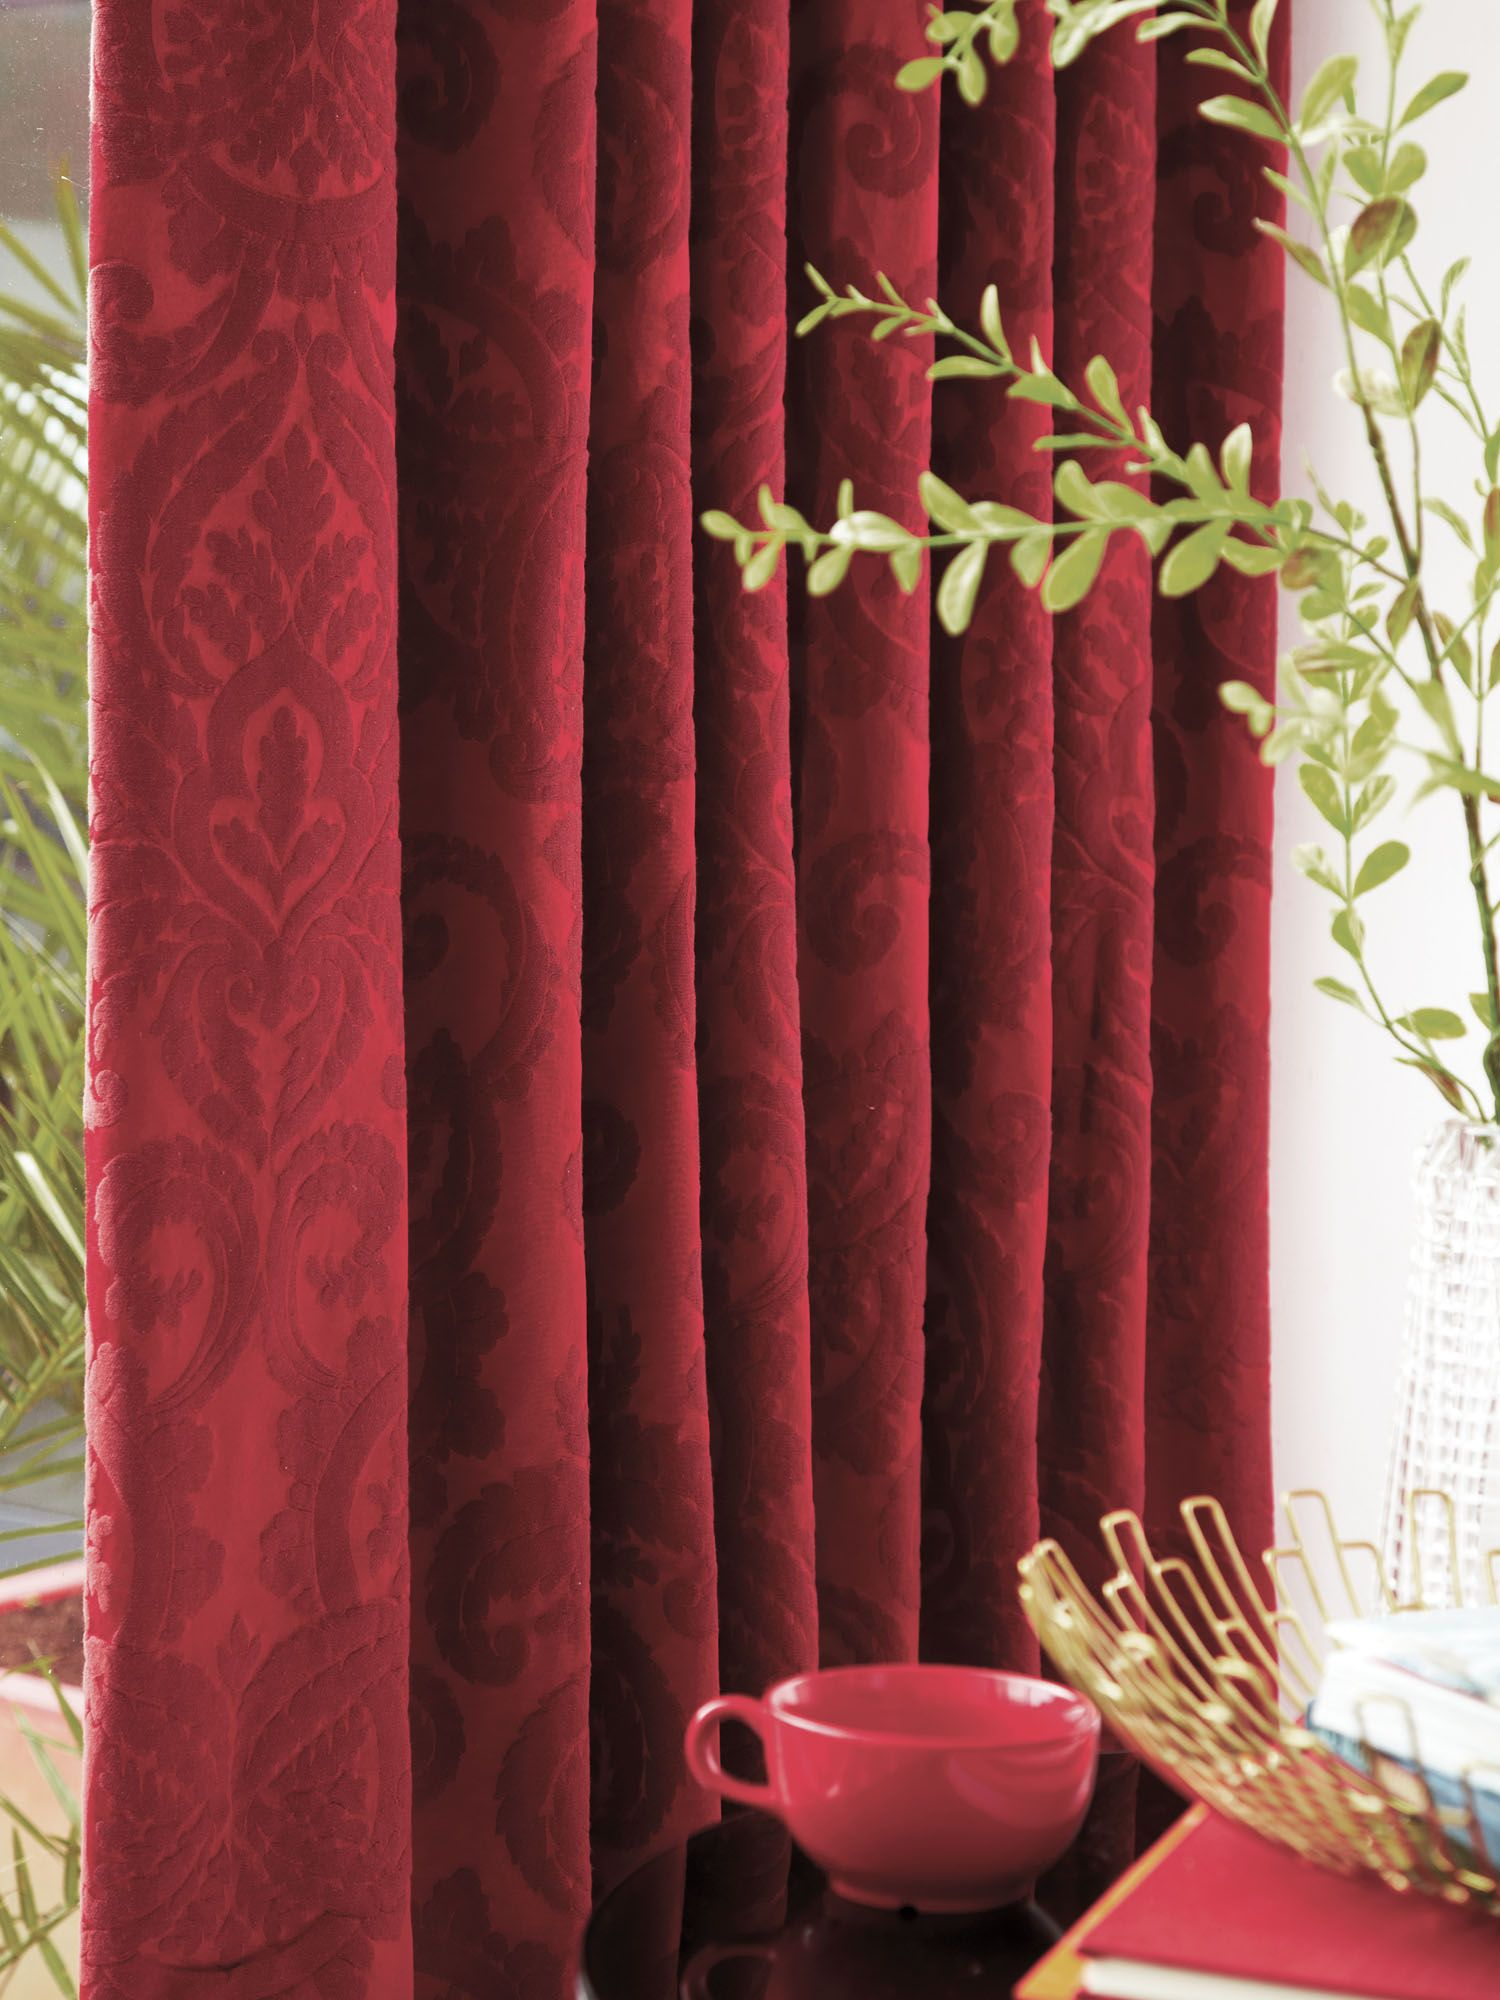 Villari curtains 90x90 red